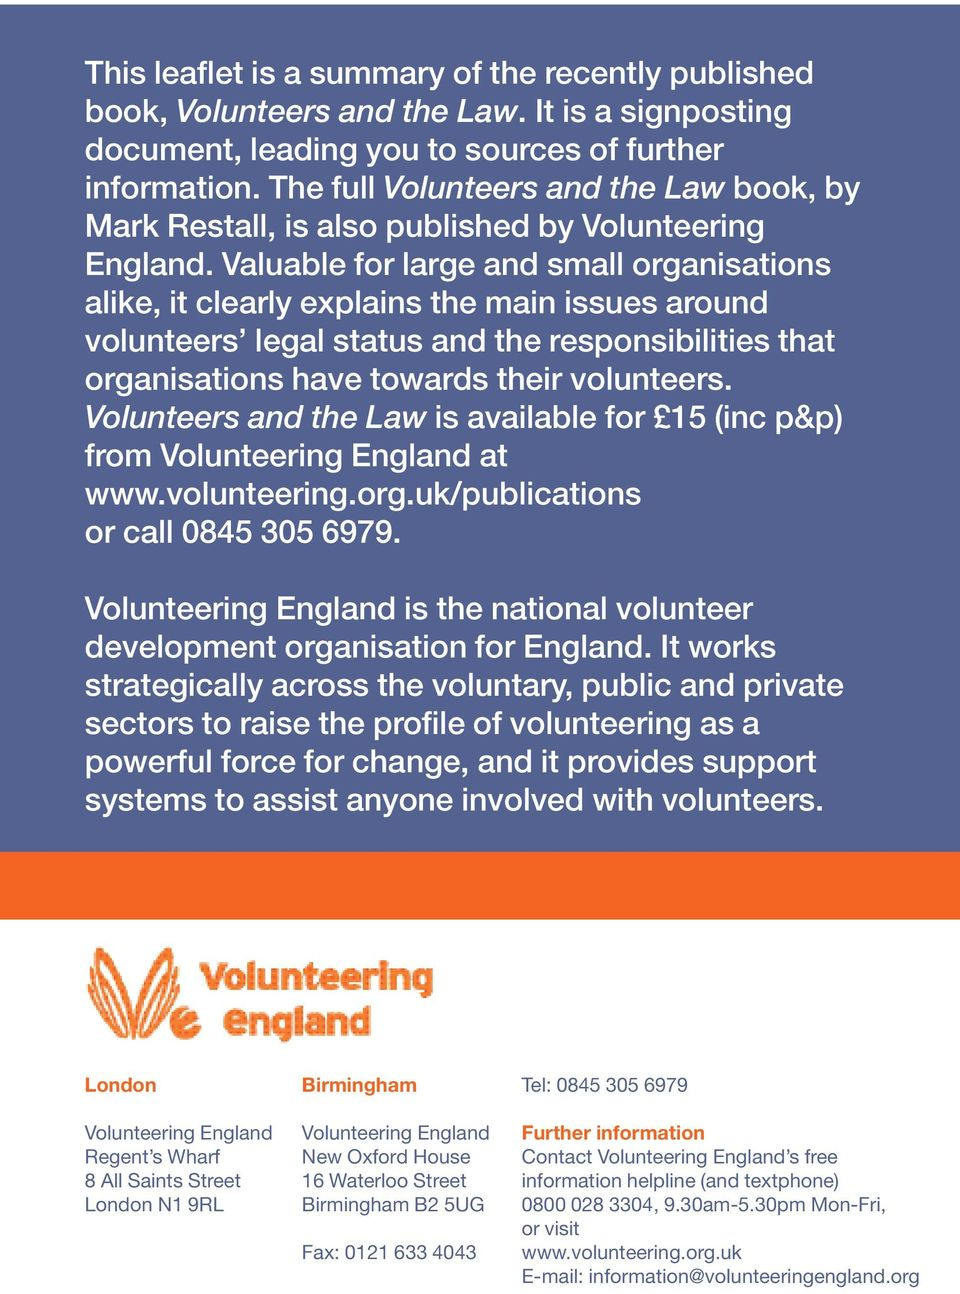 Valuable for large and small organisations alike, it clearly explains the main issues around volunteers legal status and the responsibilities that organisations have towards their volunteers.